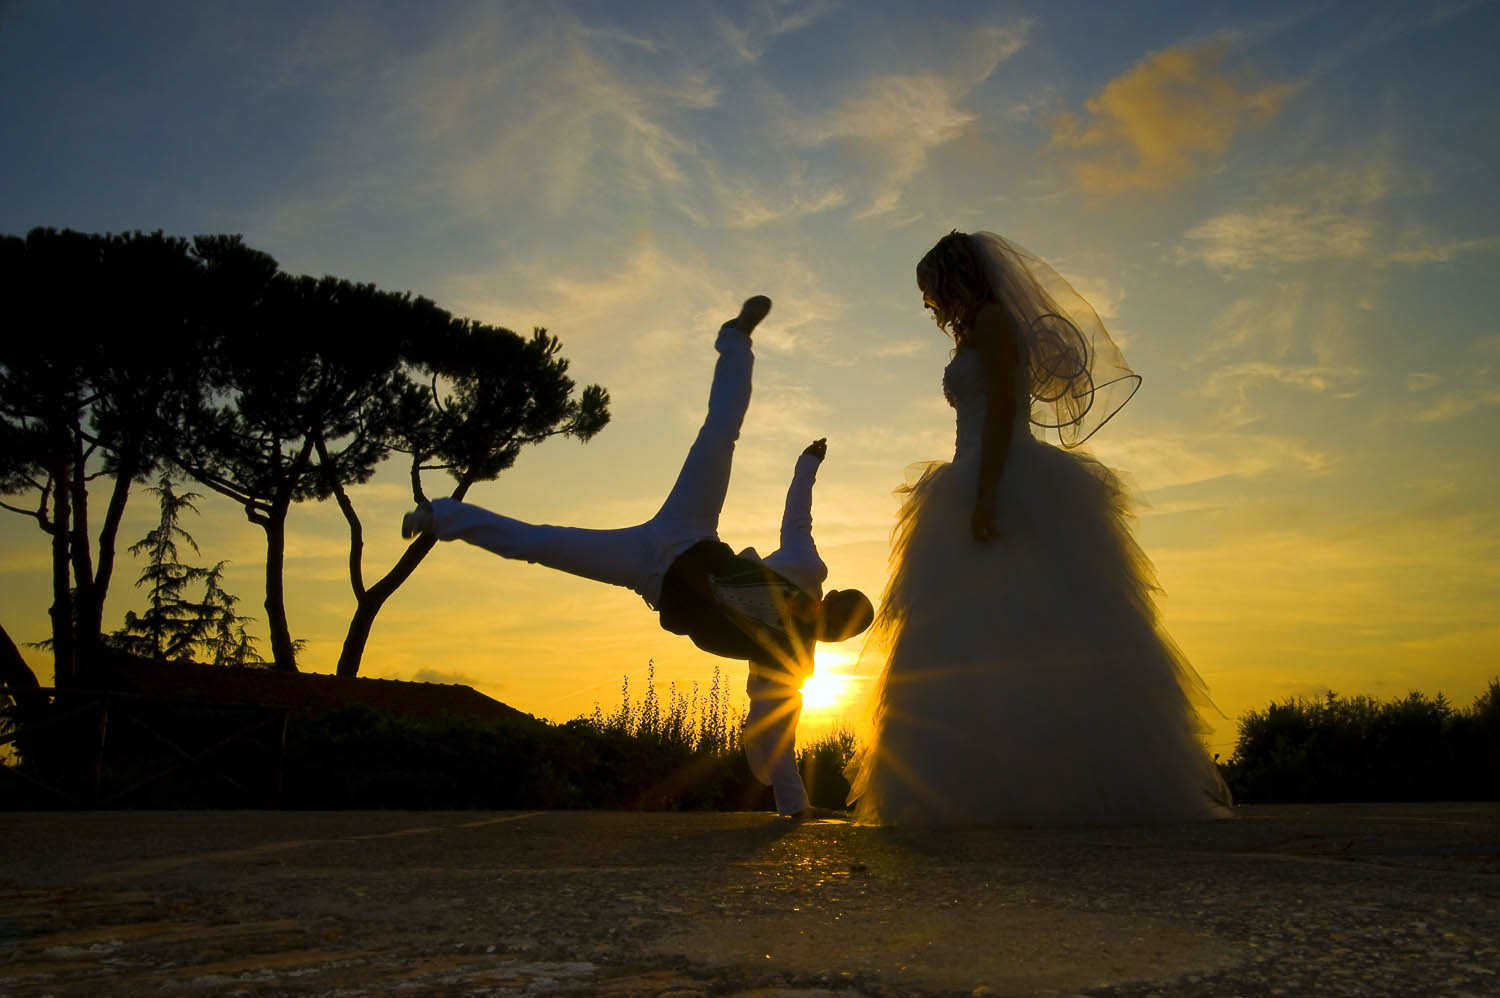 Groom on a capoeira stance. Destination Wedding Photography Rome Italy